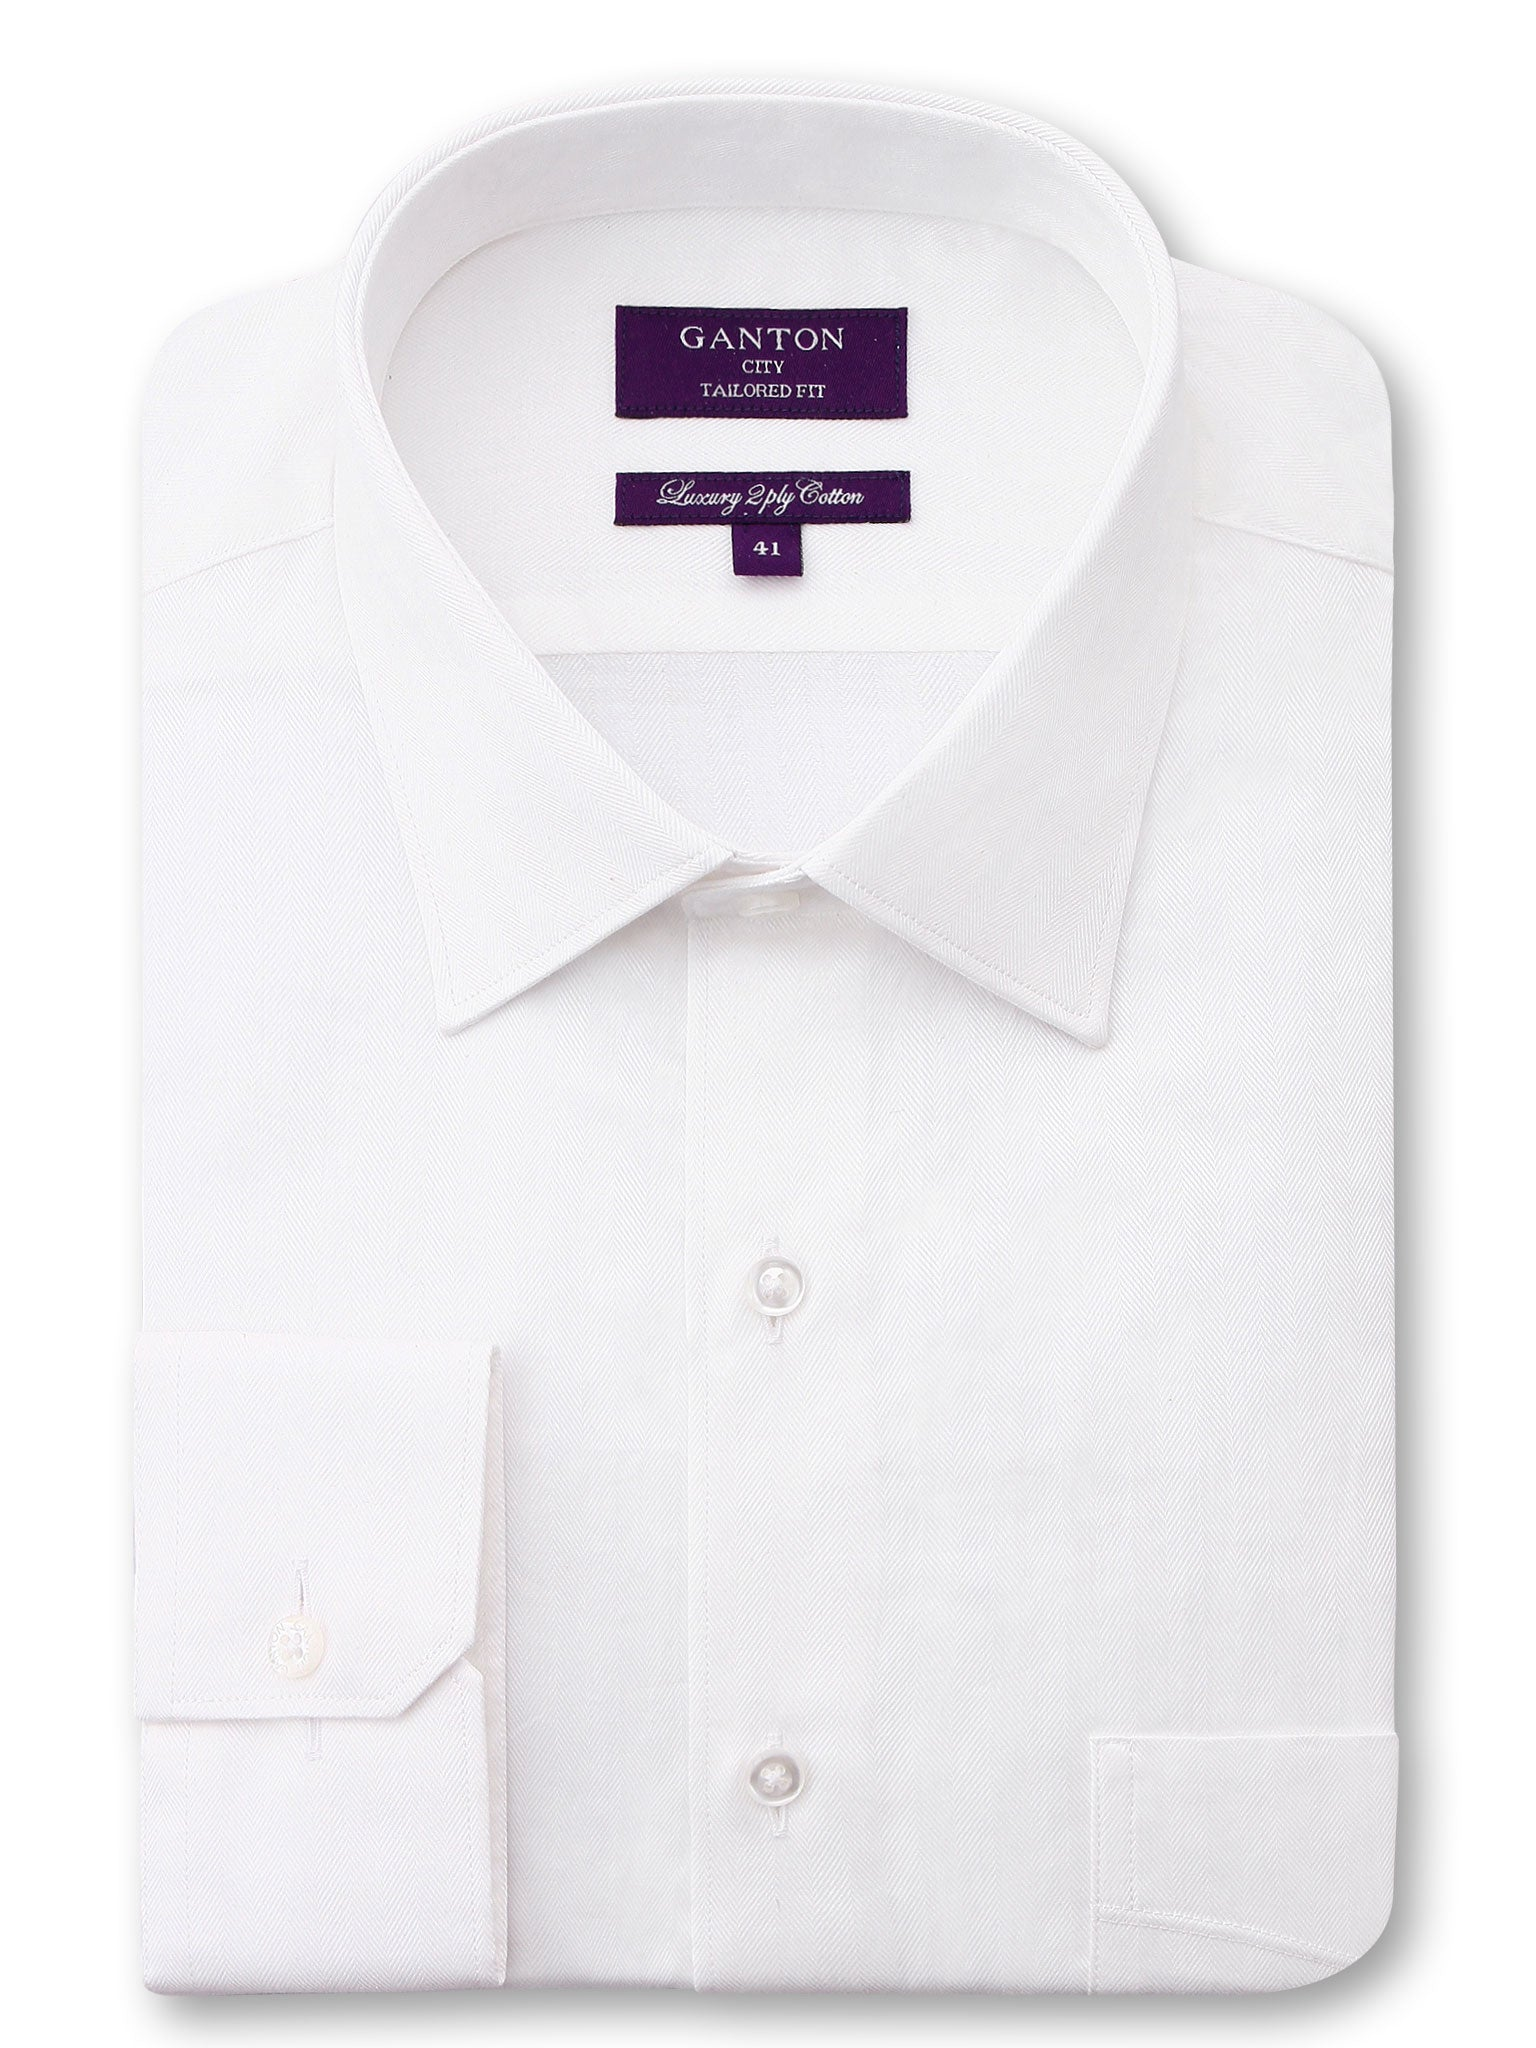 White Textured Tailored Fit Gary Luxury 2 Ply Cotton Shirt